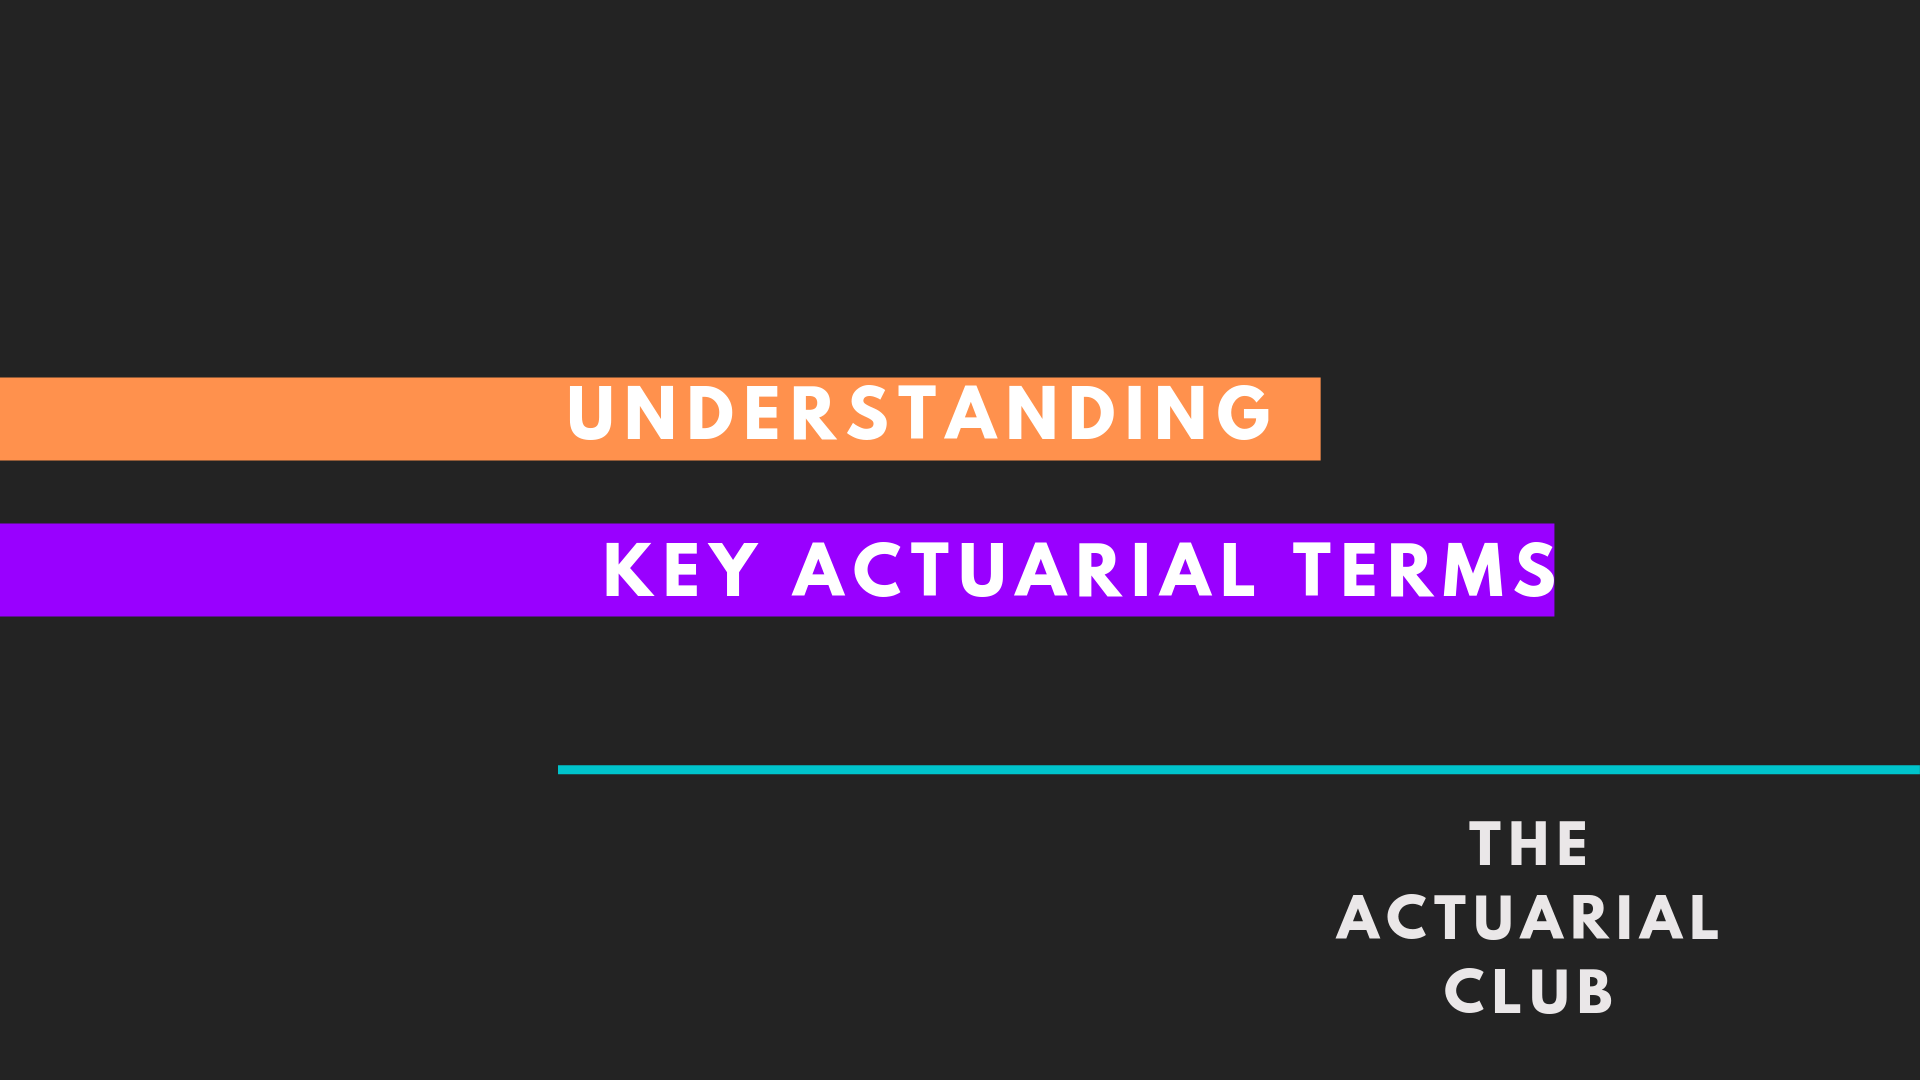 Interpreting Key Actuarial Terms and Values